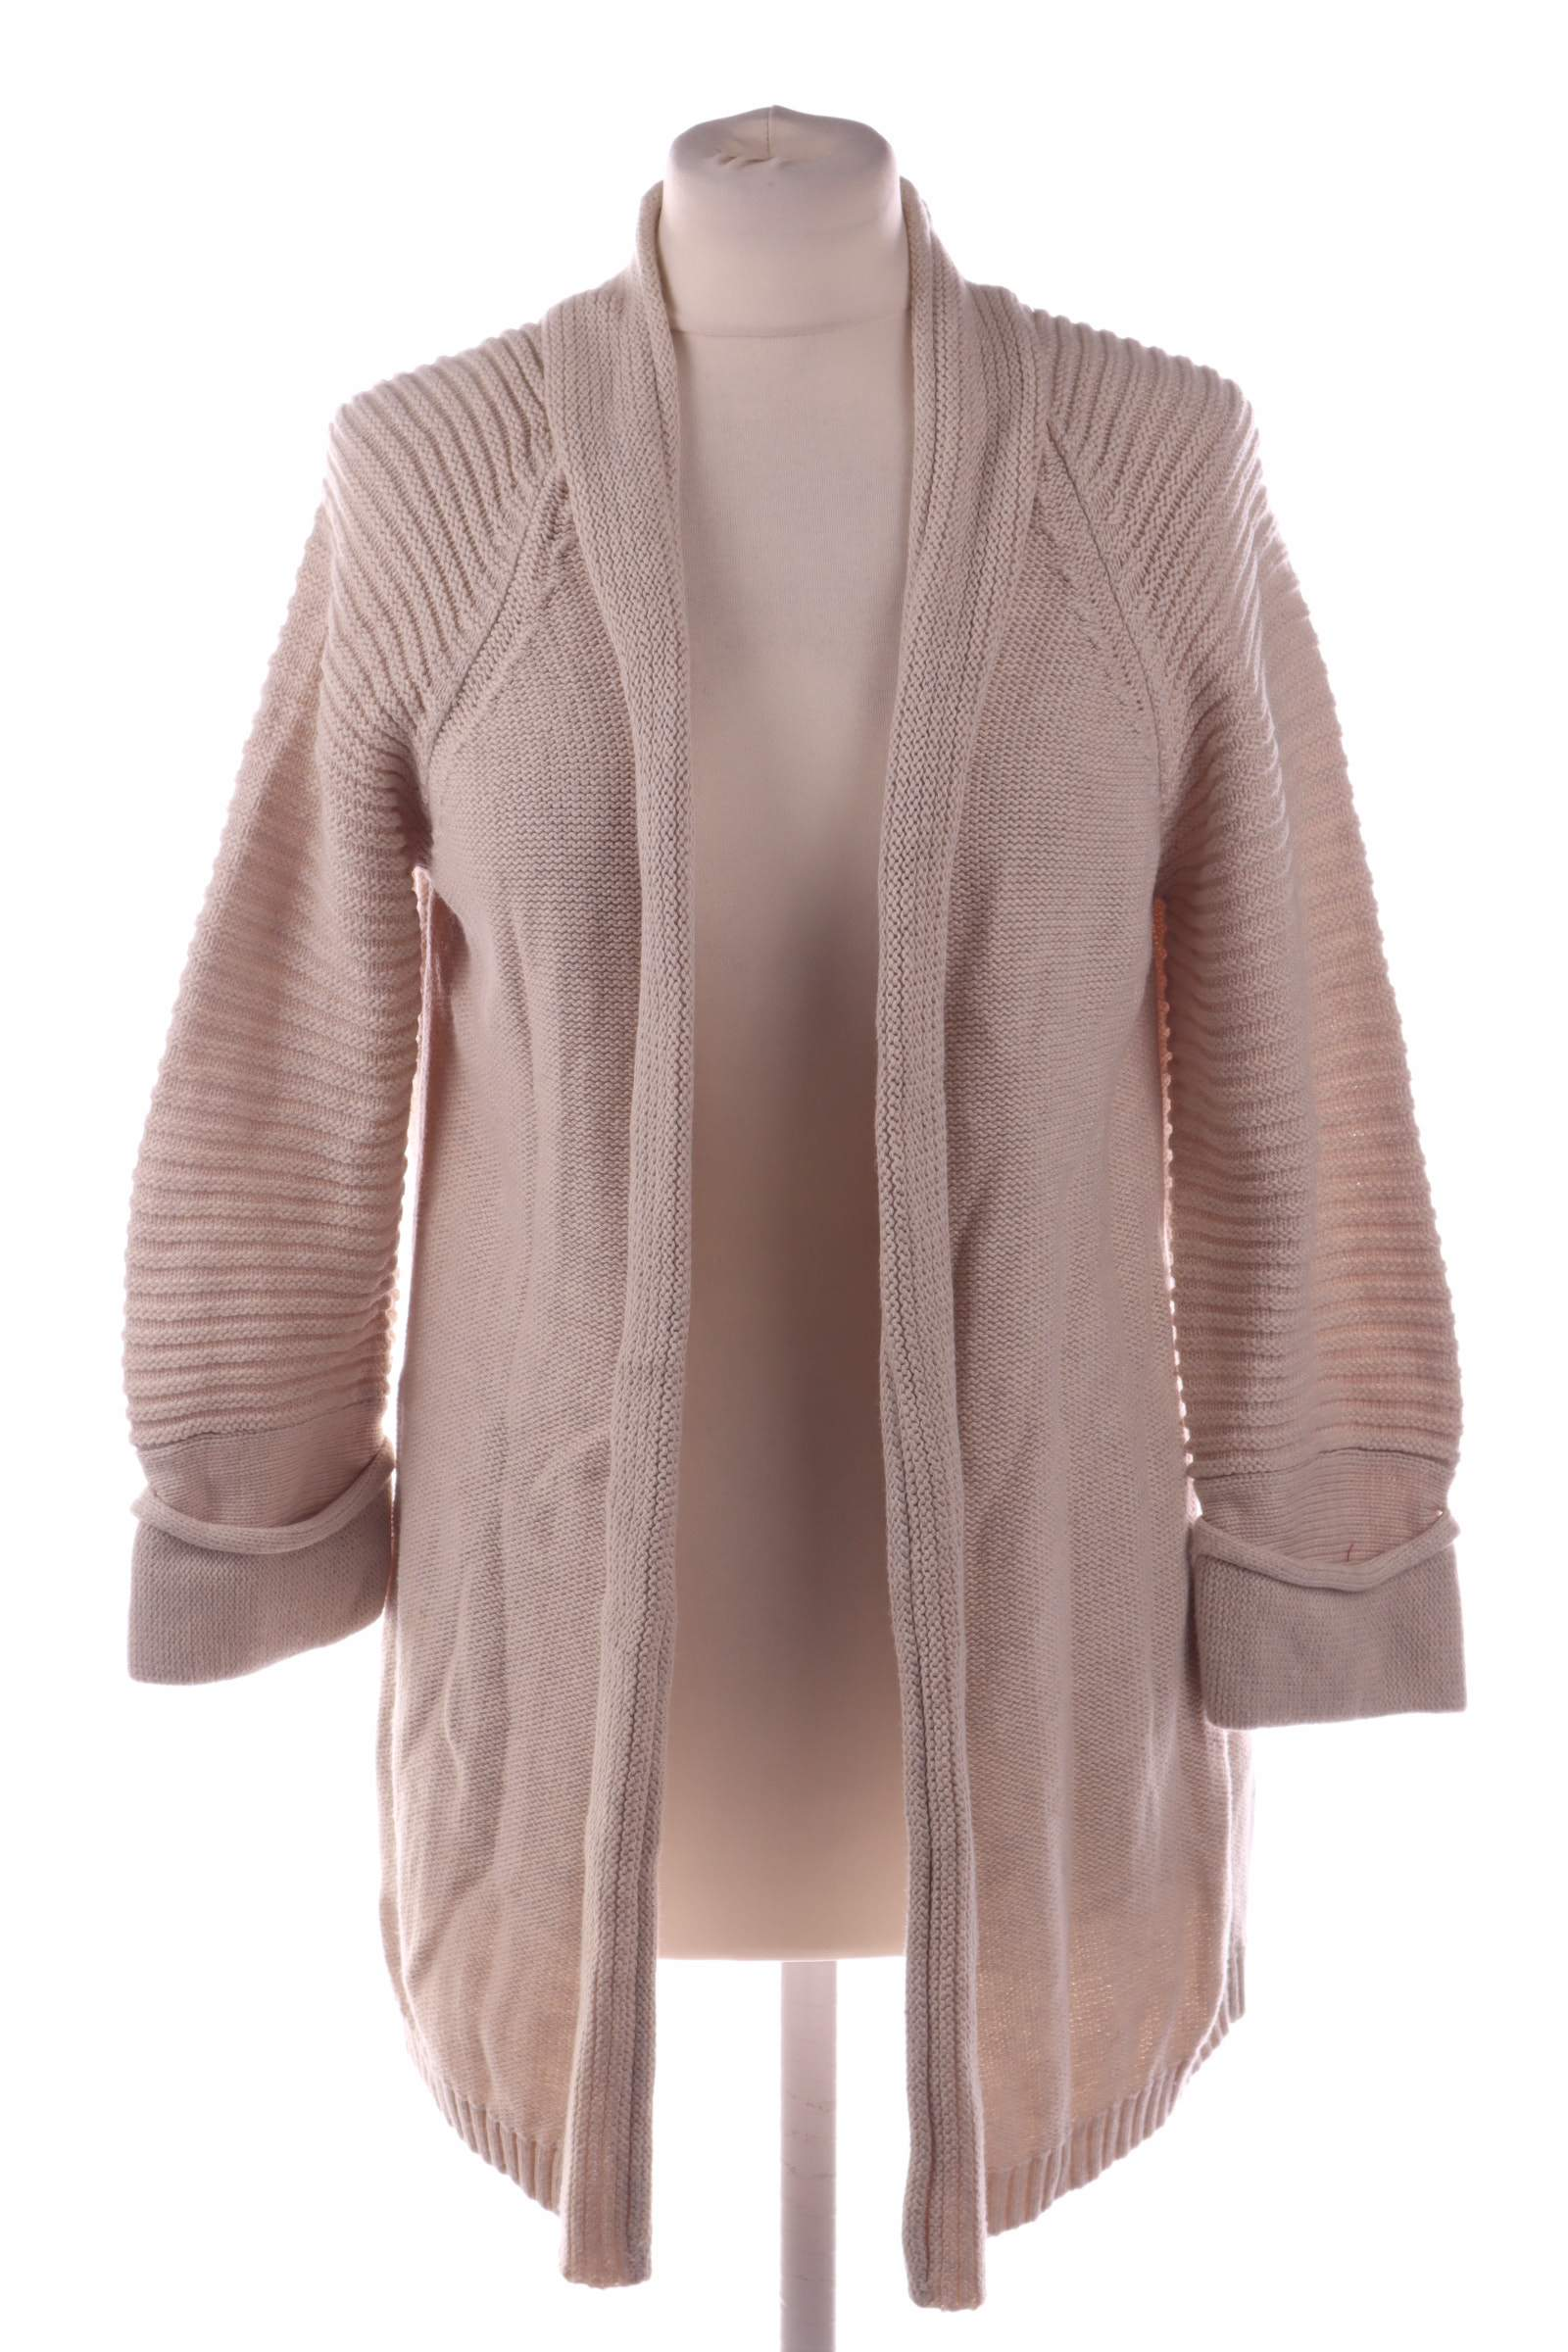 365 Sunshine Beige Sweater - upty.store